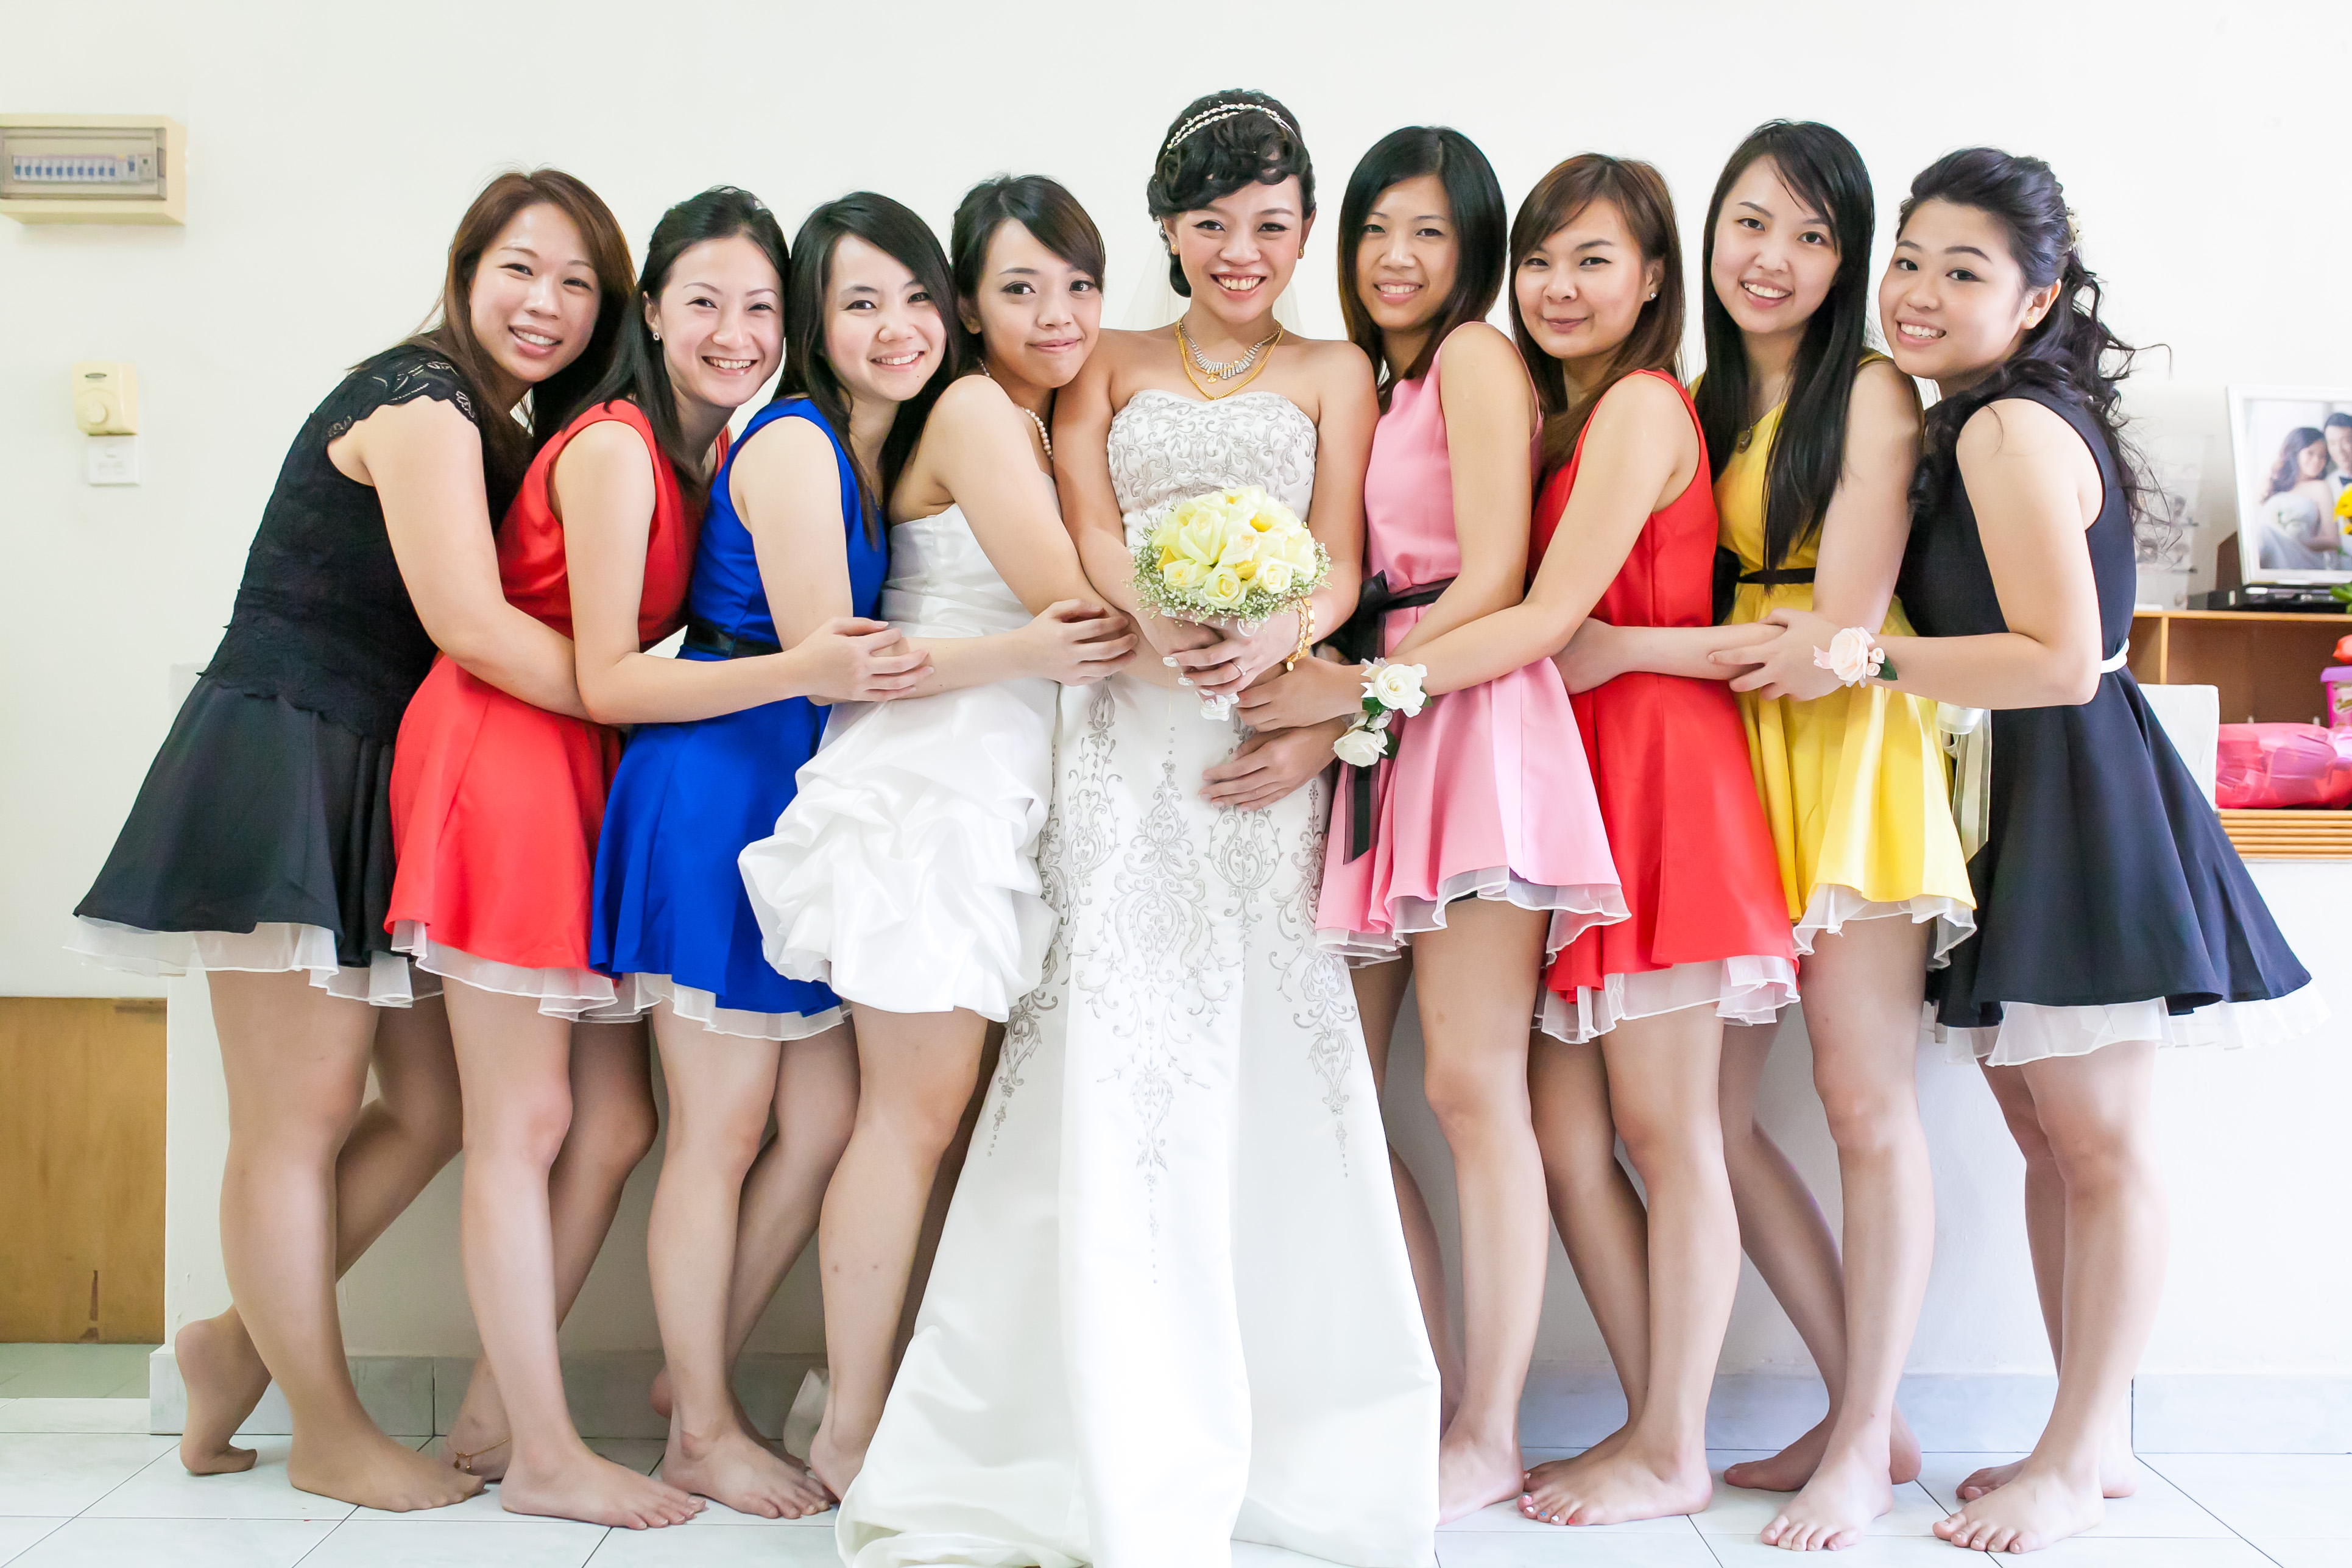 Wedding Photography | Make Memories Last Forever